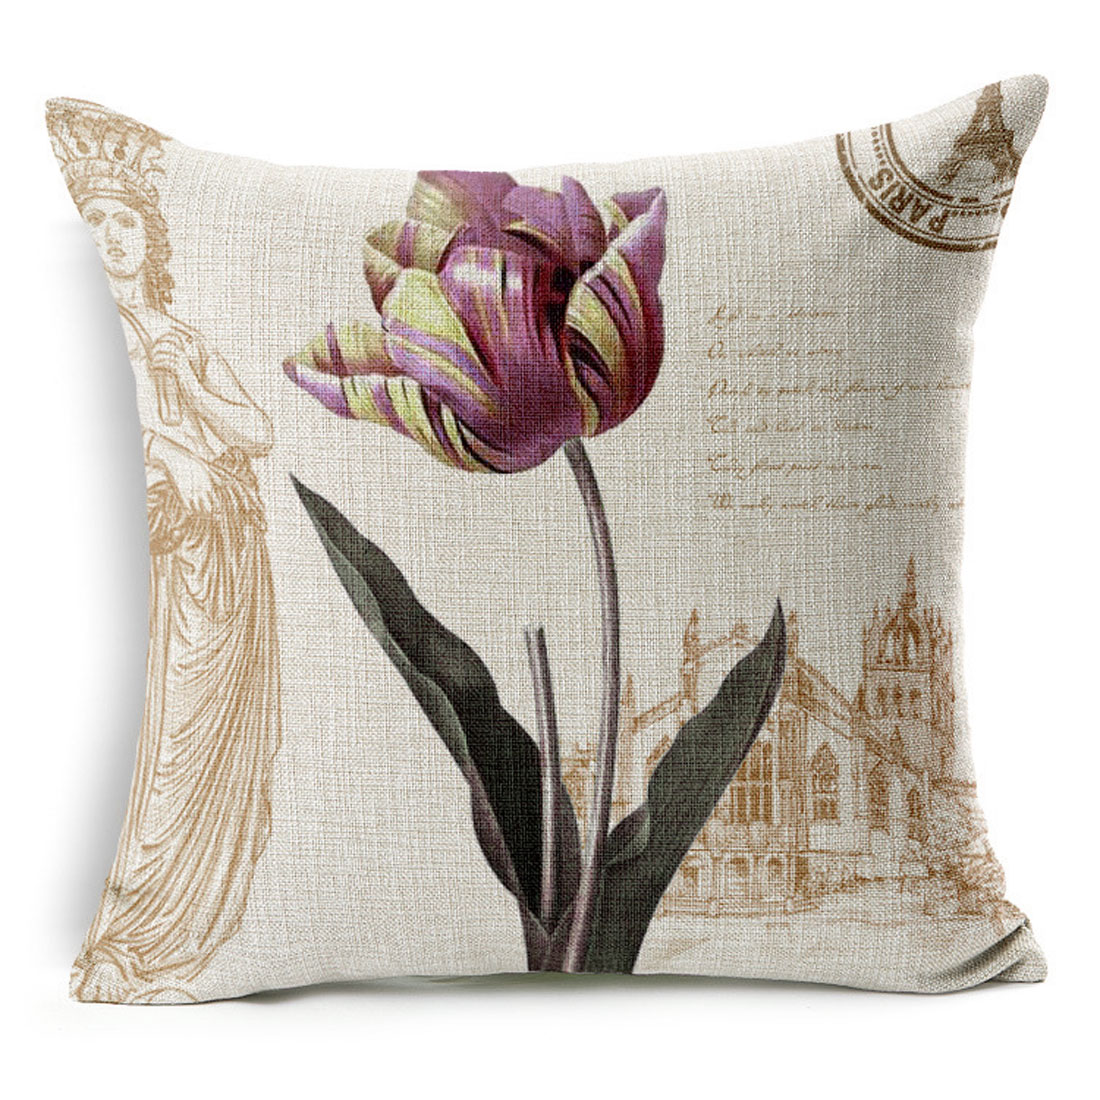 Household Sofa Couch Cotton Linen Tulip Pattern Waist Throw Cushion Cover Pillow Case